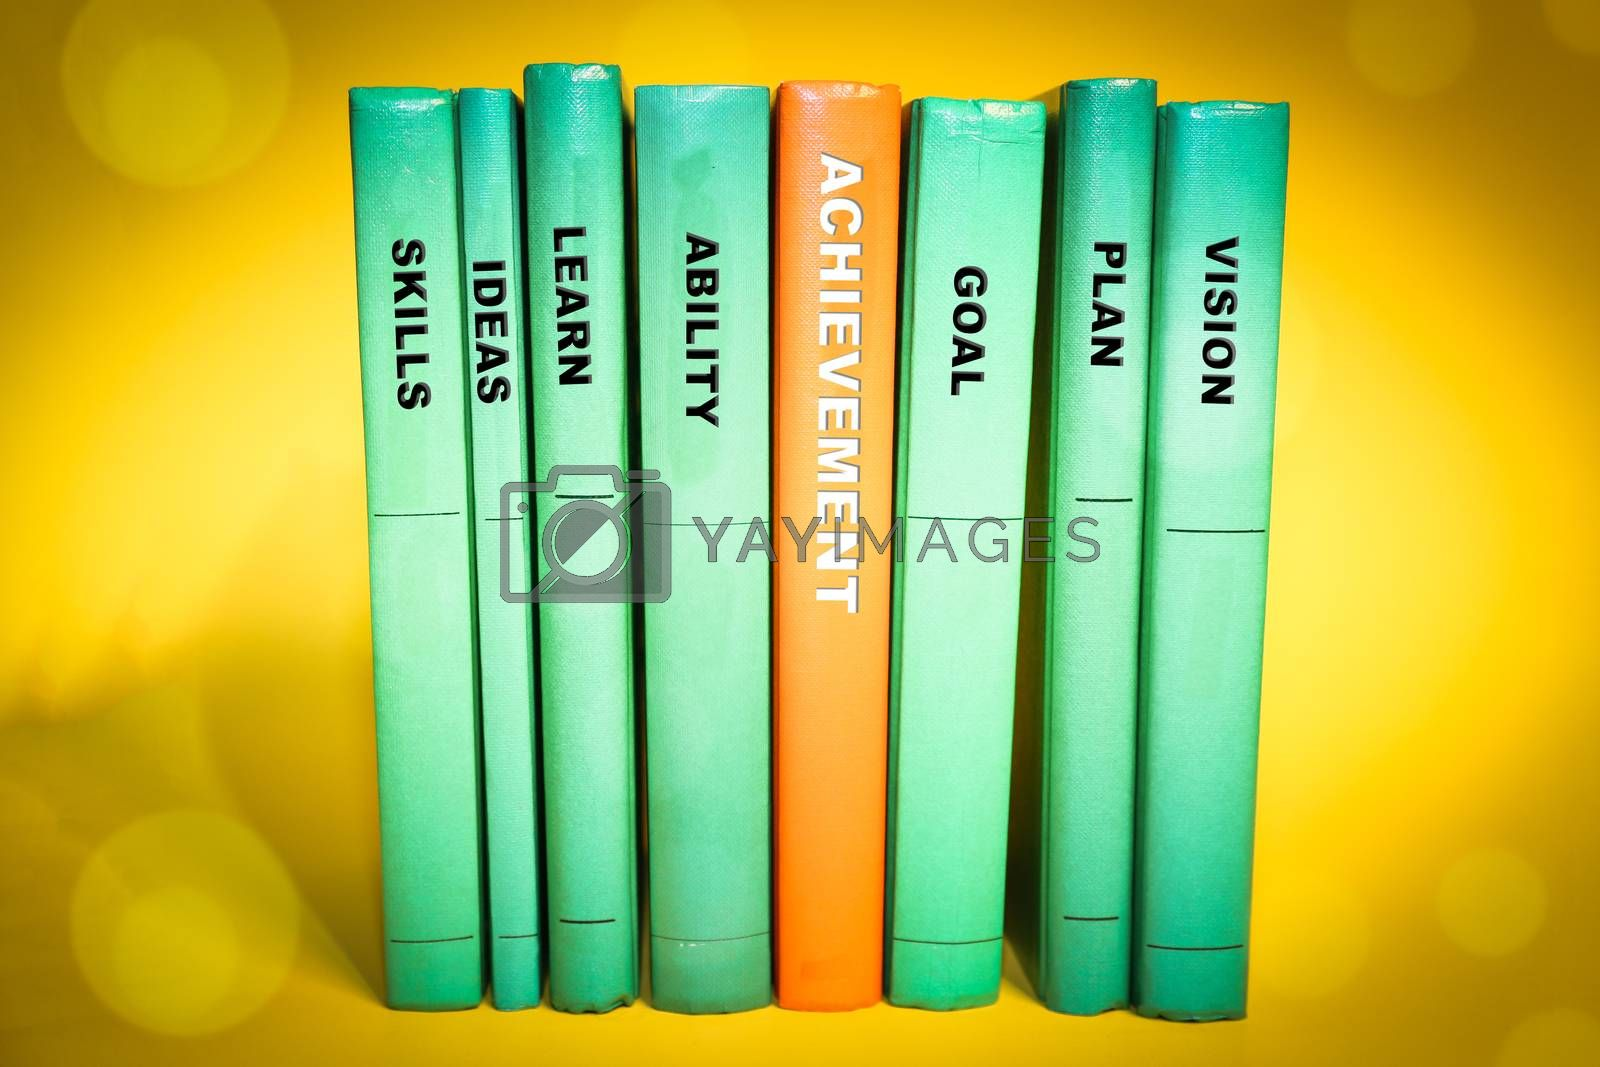 Royalty free image of Achievement concept on books spine, various keywords  by inspireme